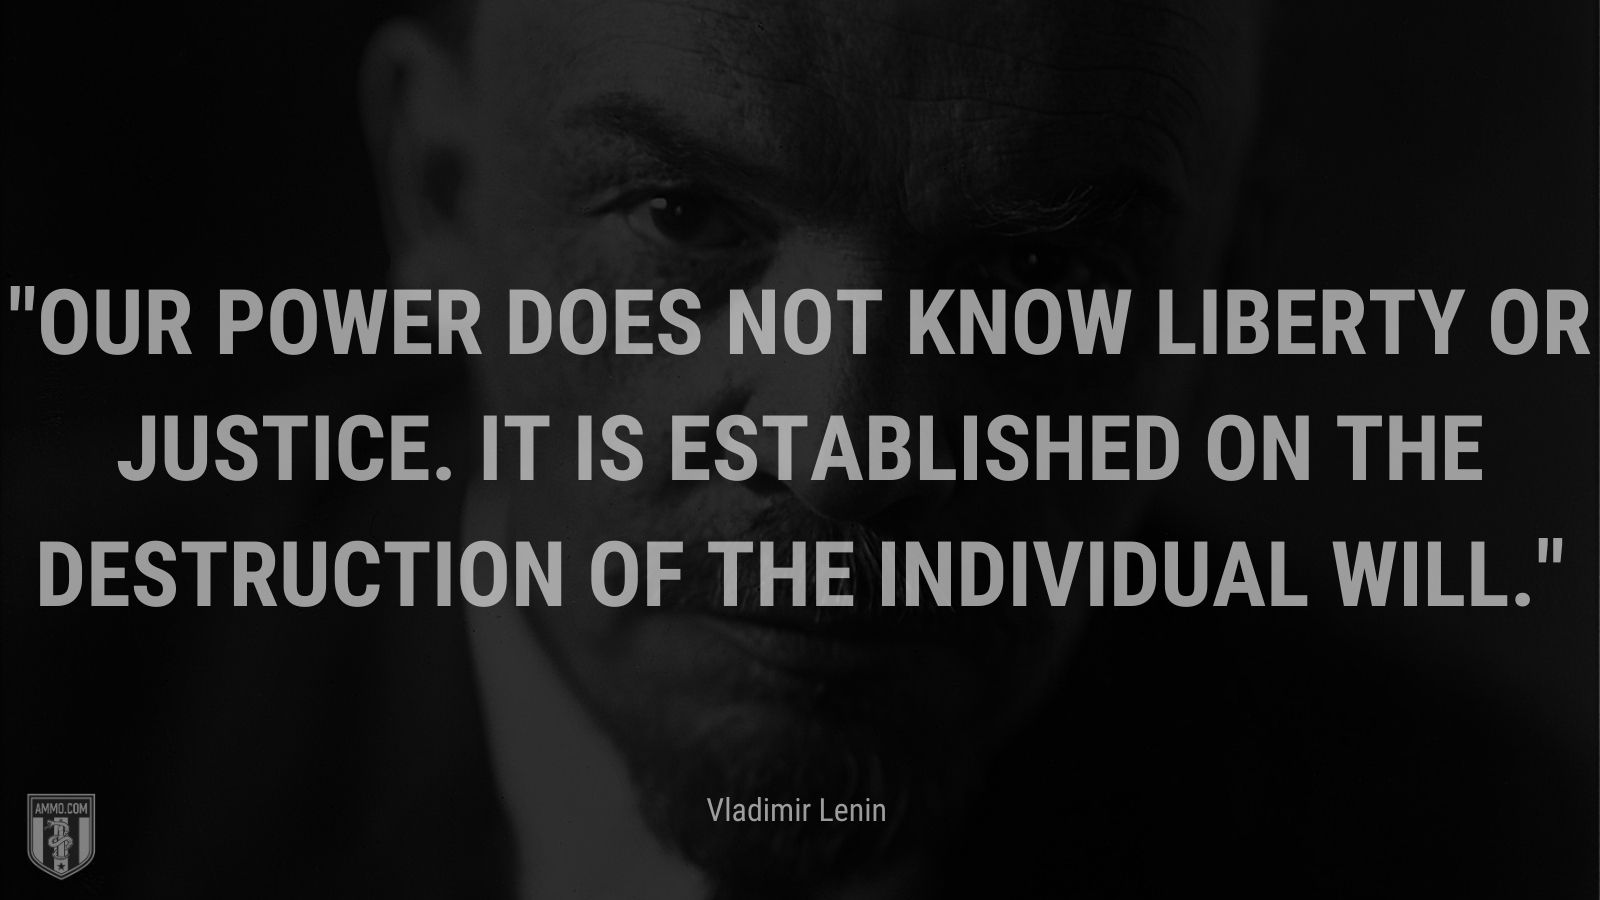 """""""Our power does not know liberty or justice. It is established on the destruction of the individual will."""" -Vladimir Lenin"""